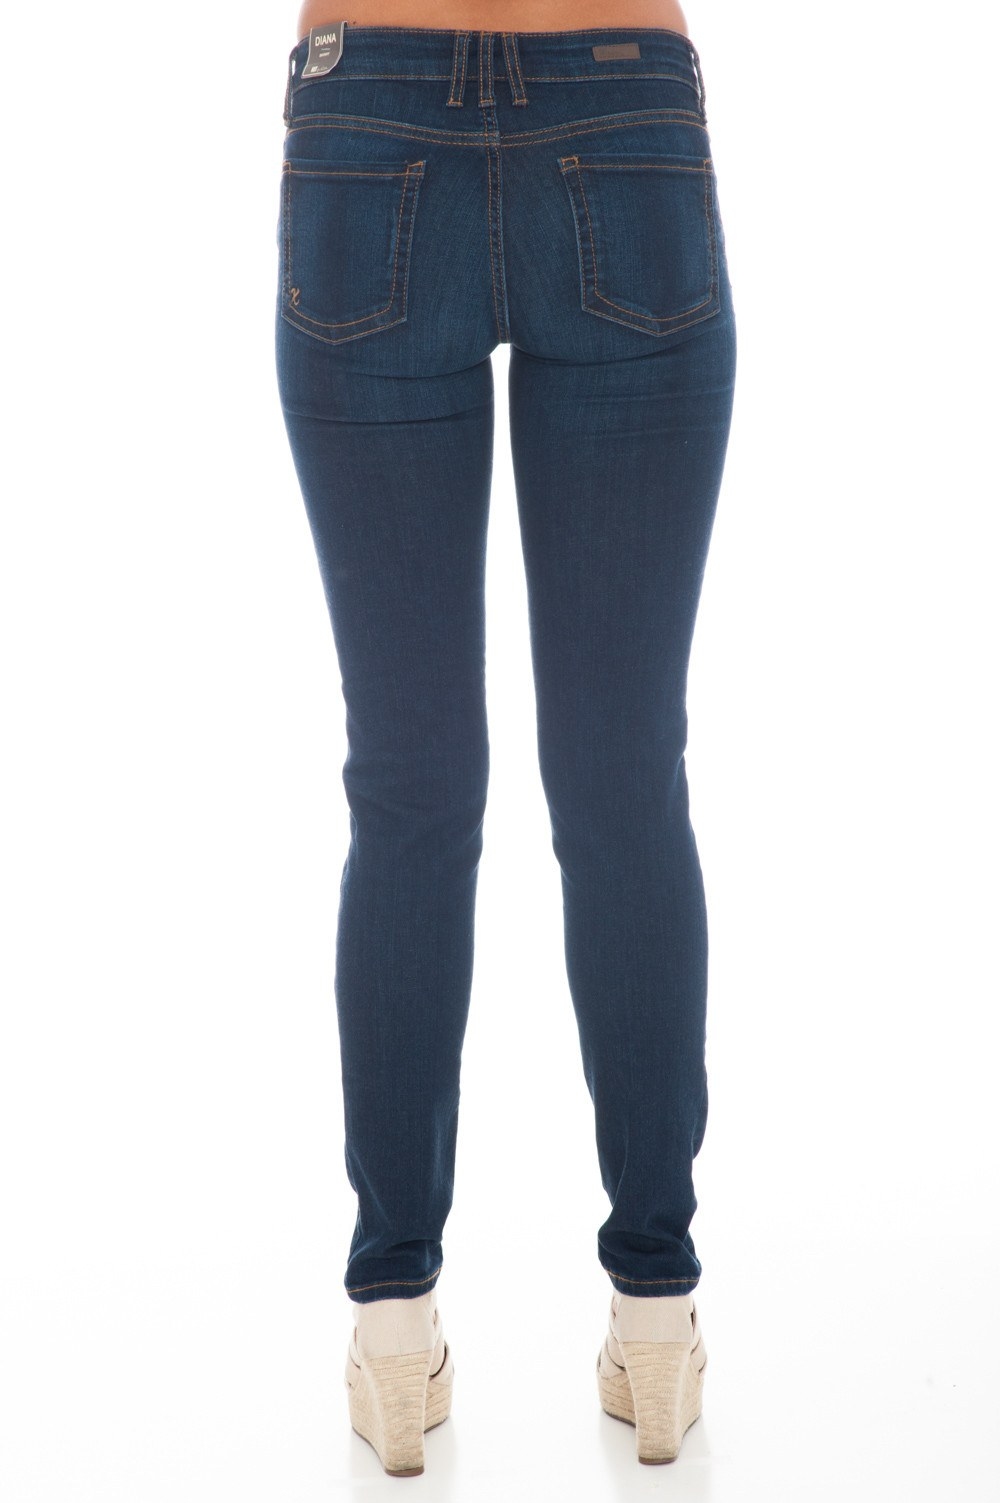 Jean - Diana Brightness Skinny by Kut From the Kloth - 3